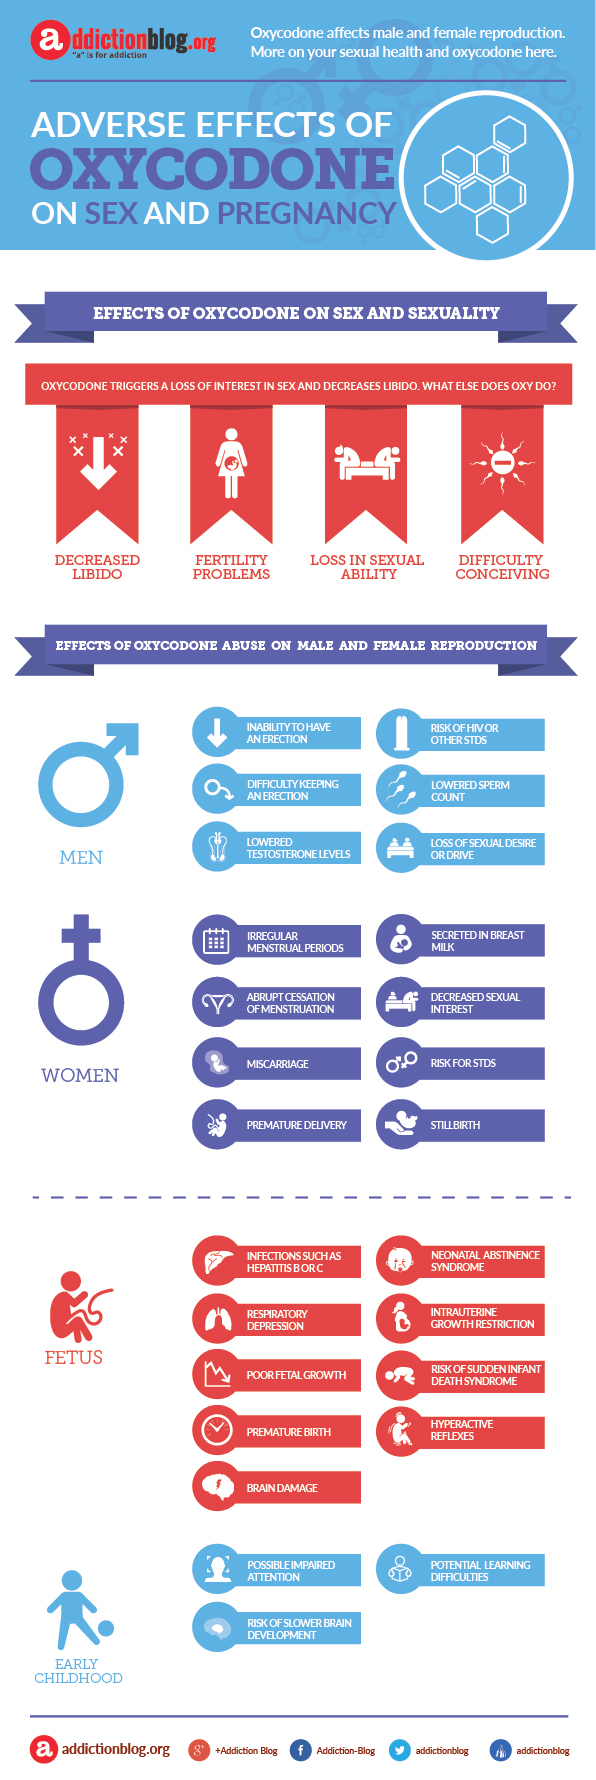 Oxycodone effects on sex and pregnancy problems (INFOGRAPHIC)